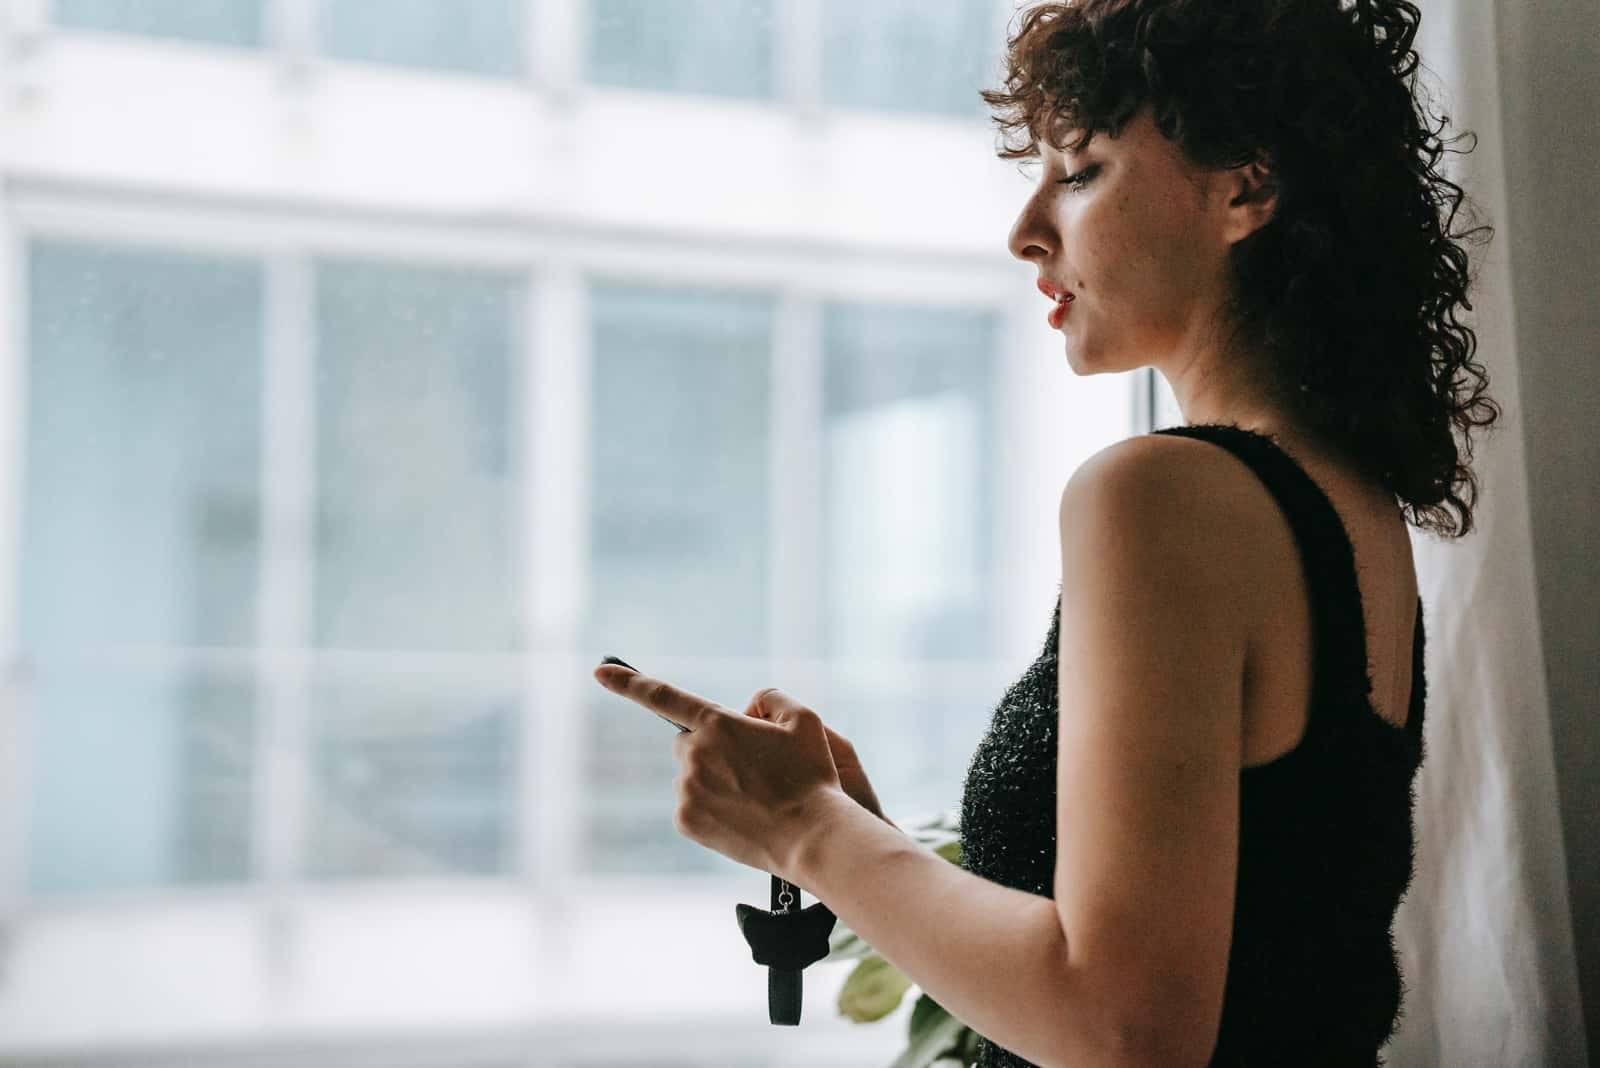 woman holding smartphone while standing near window